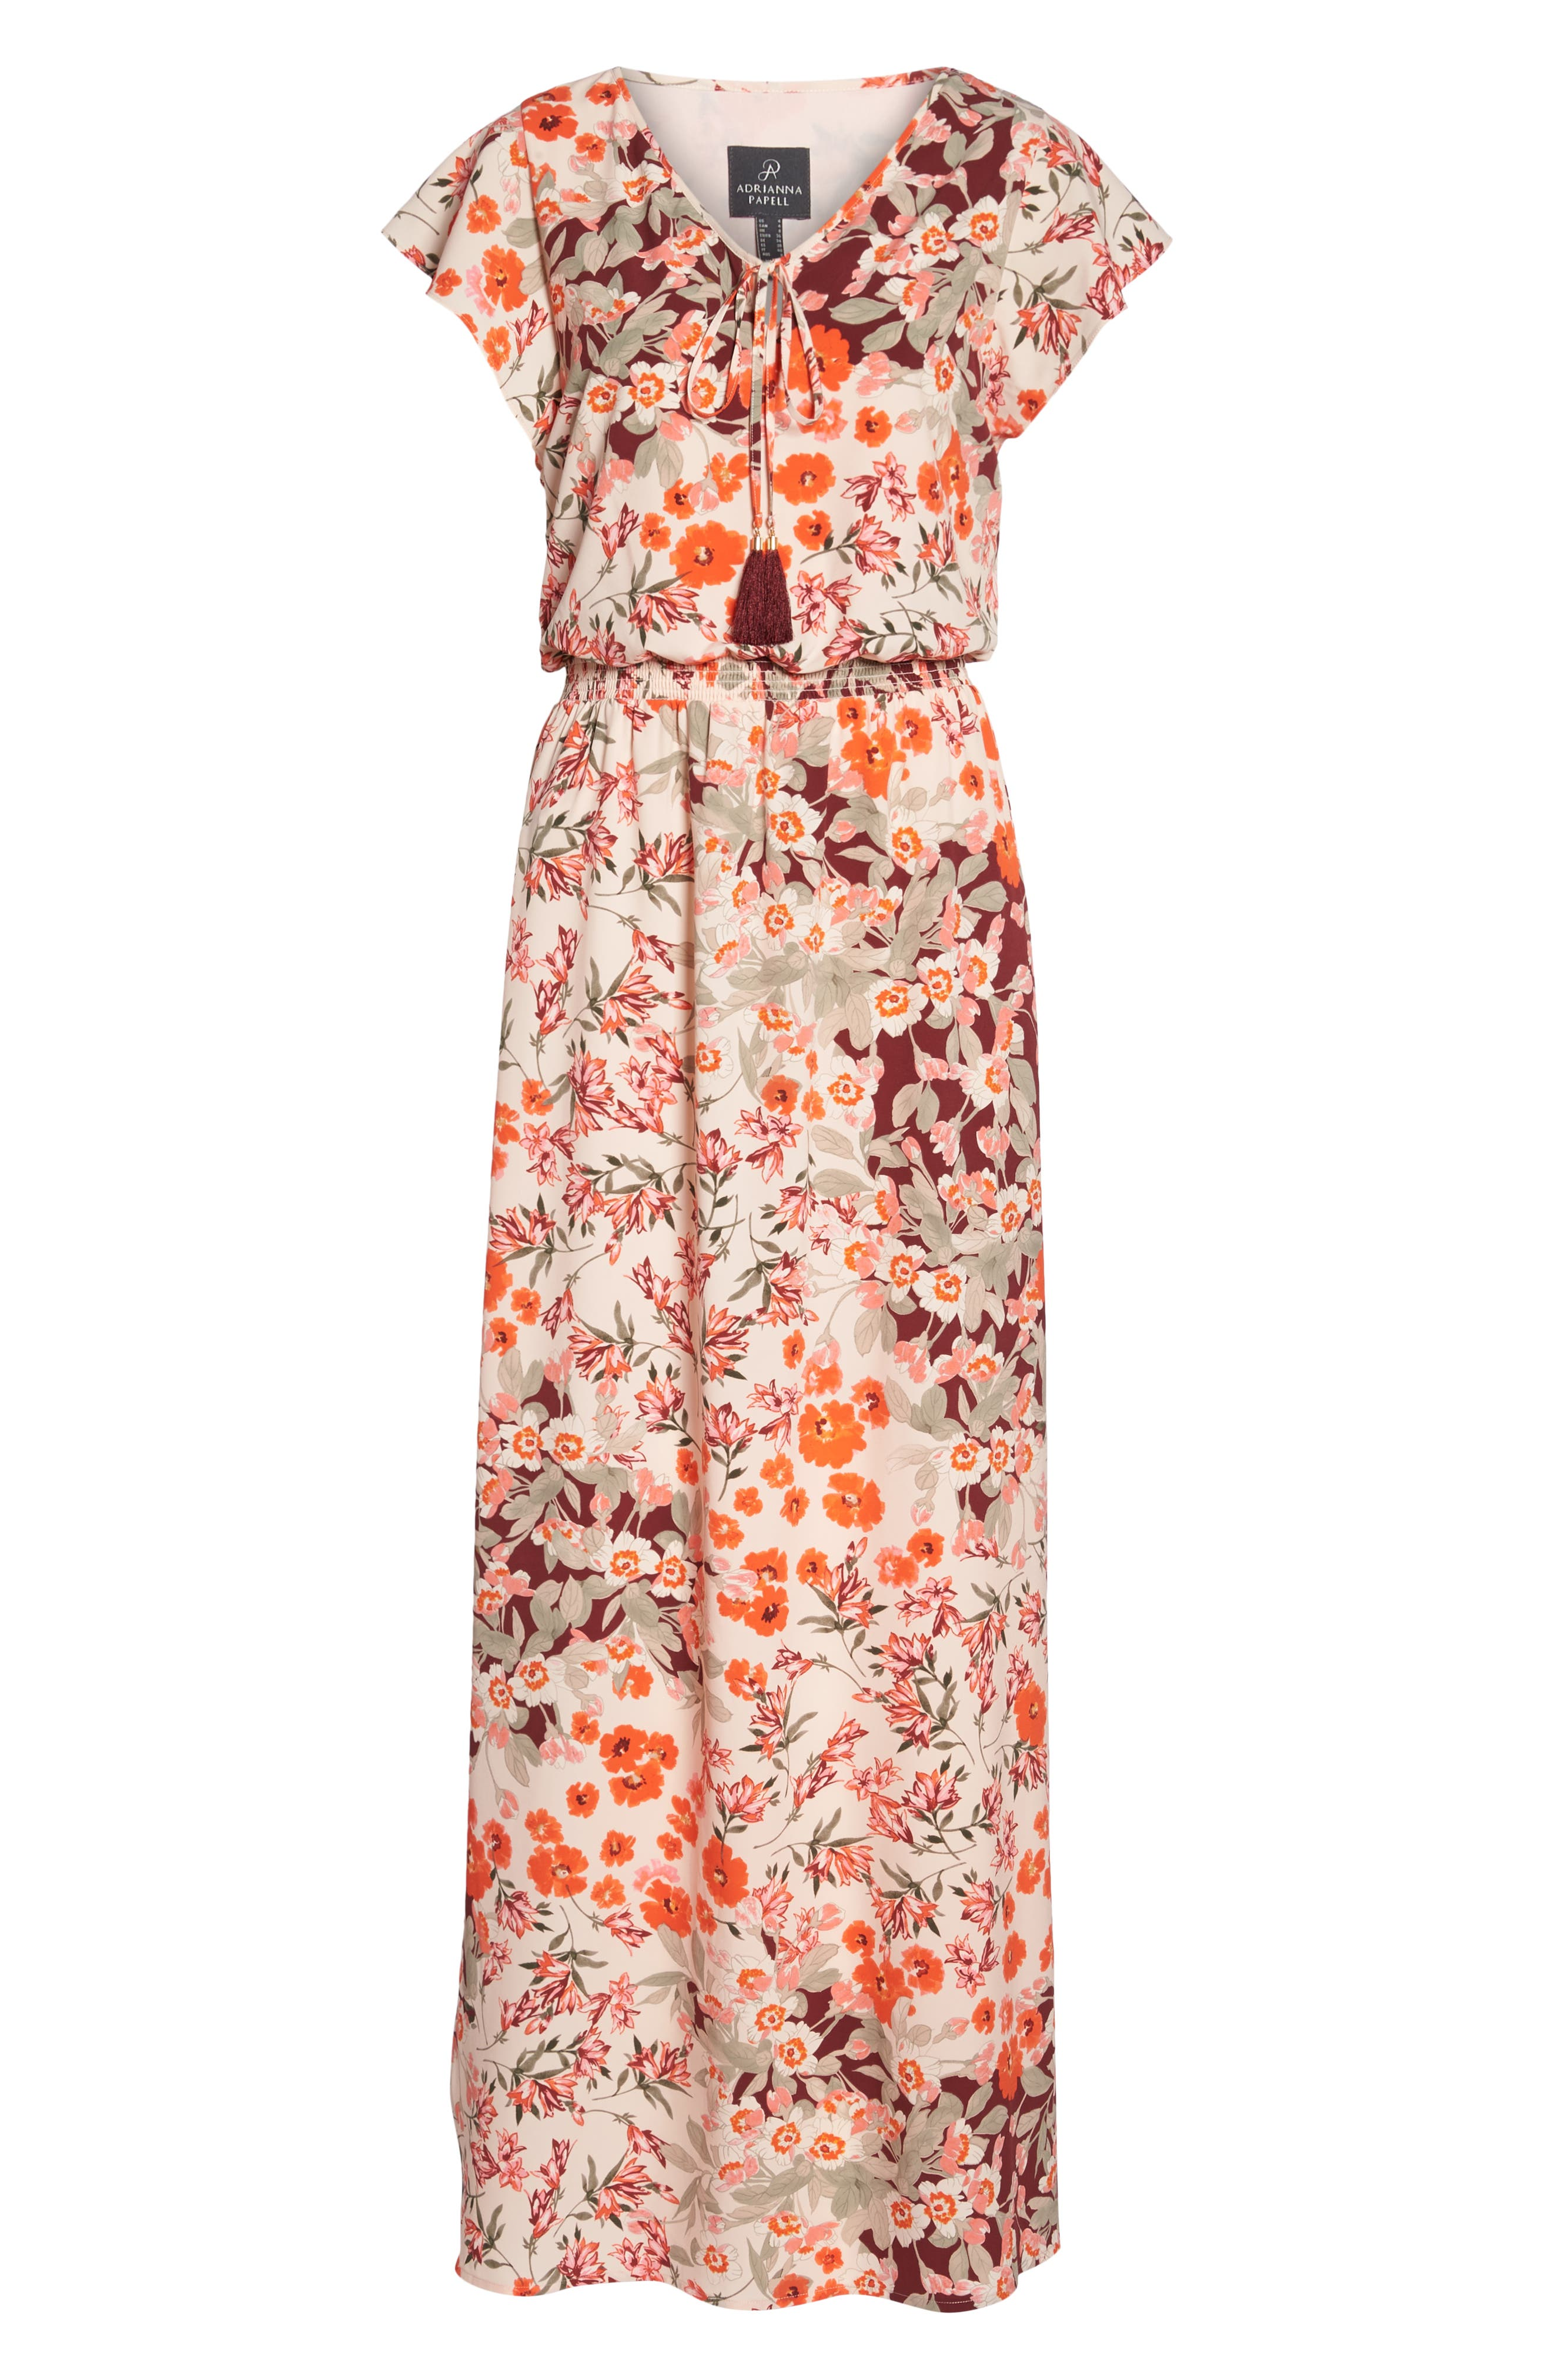 ADRIANNA PAPELL,                             Floral Ruffle Sleeve Maxi Dress,                             Alternate thumbnail 7, color,                             640